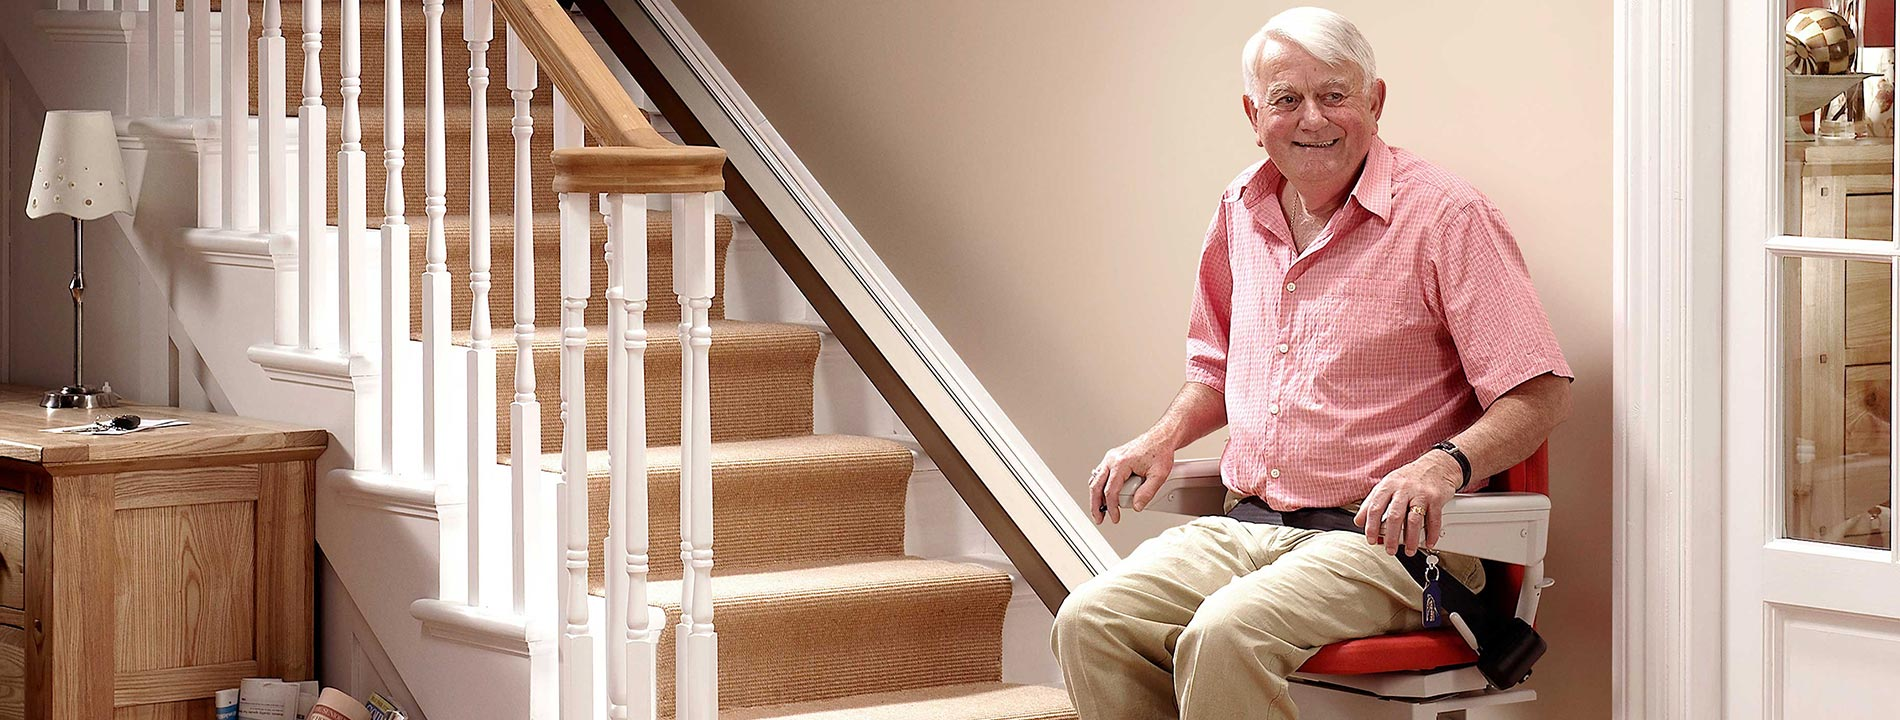 Get A New Indoor Stair Lift Installed